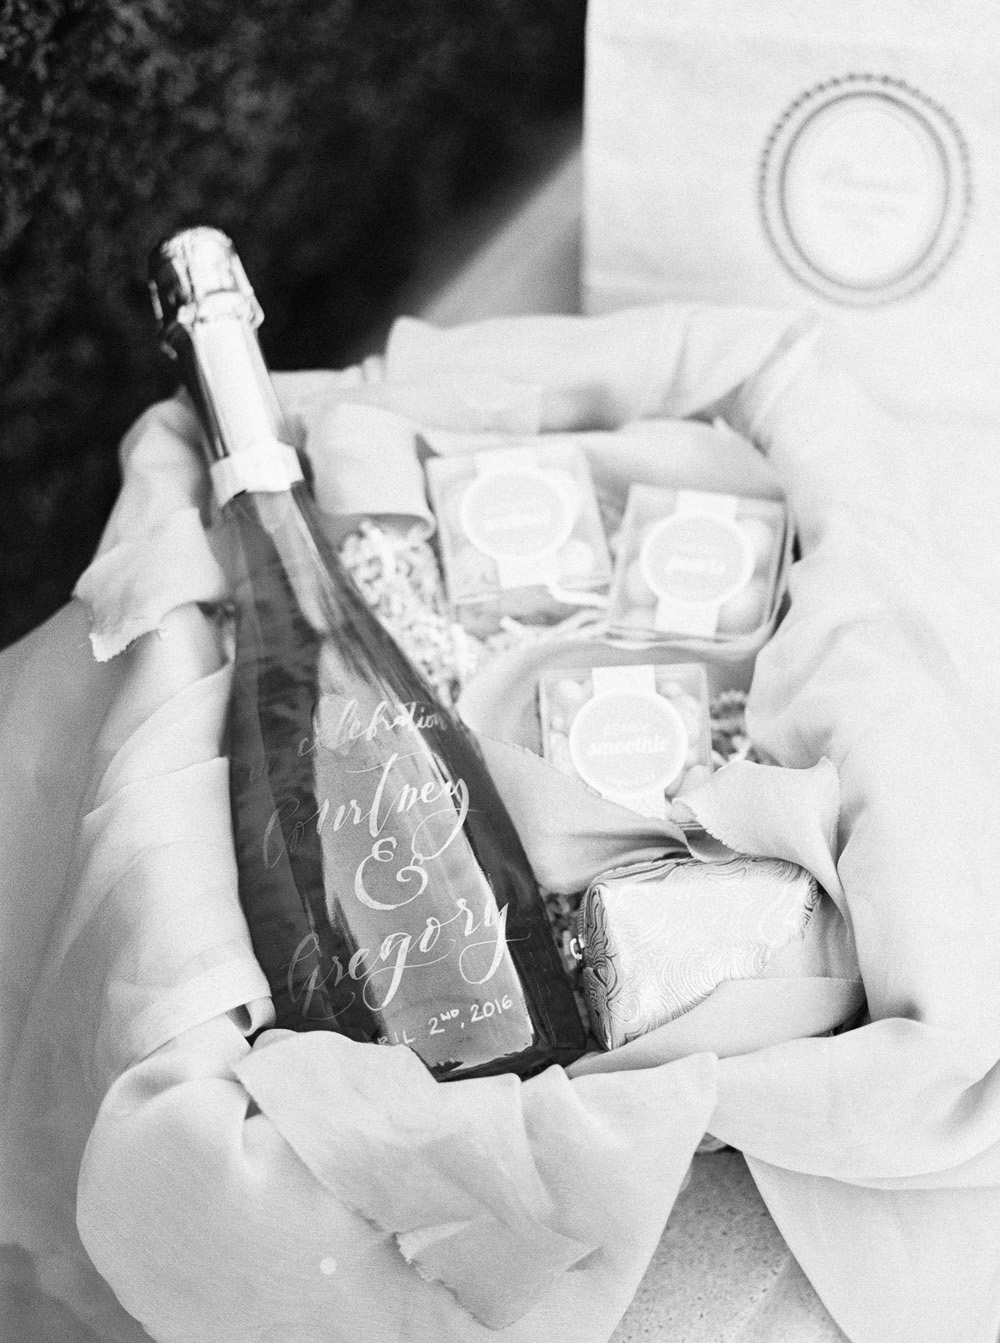 Bridesmaid gift basket with handwritten calligraphy on Champagne bottle | by Lara Lam photography